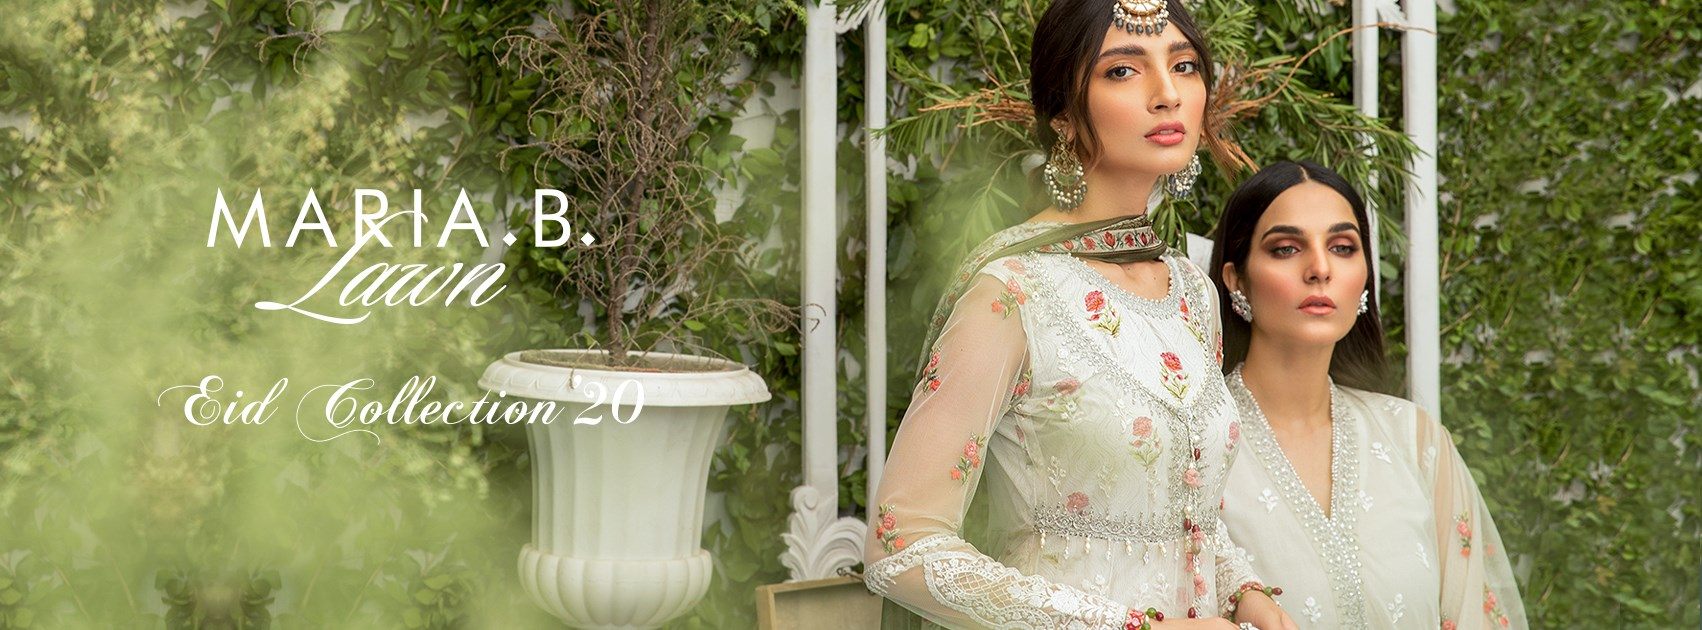 Maria.B Eid Collection